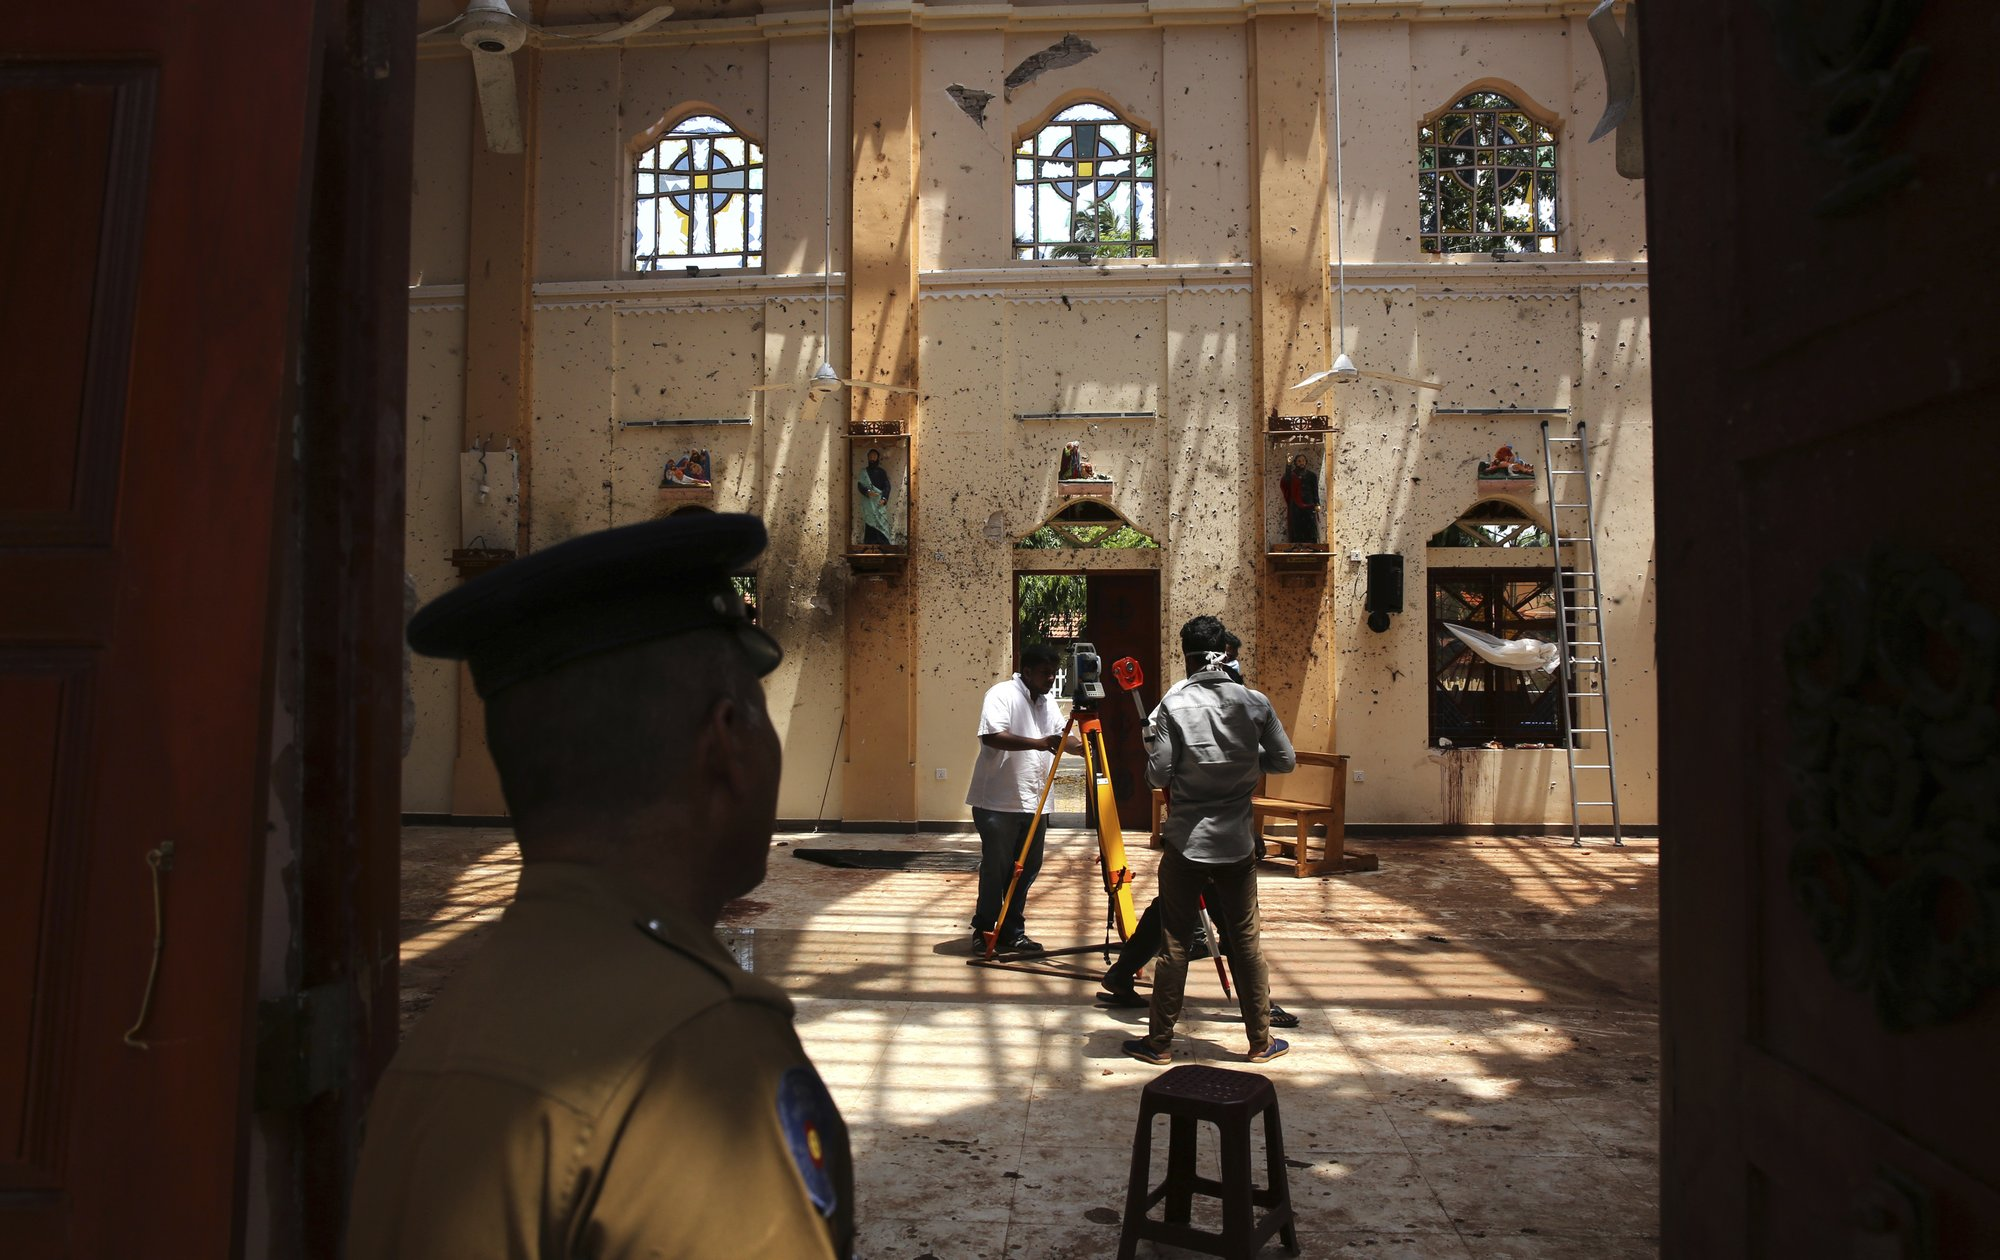 In this Thursday, April 25, 2019 photo, a policeman stands guard, as surveyors work at St. Sebastian's Church, where a suicide bomber blew himself up on Easter Sunday in Negombo, north of Colombo, Sri Lanka. Nearly a week later, the smell of death is everywhere, though the bodies are long gone. For more than 50 years, St. Sebastian's had been the scene of weddings and baptisms, of Christmas celebrations and countless Masses. The walls are now blackened near where the bomber stood when he killed himself, spraying shrapnel in every direction. (AP Photo/Manish Swarup)